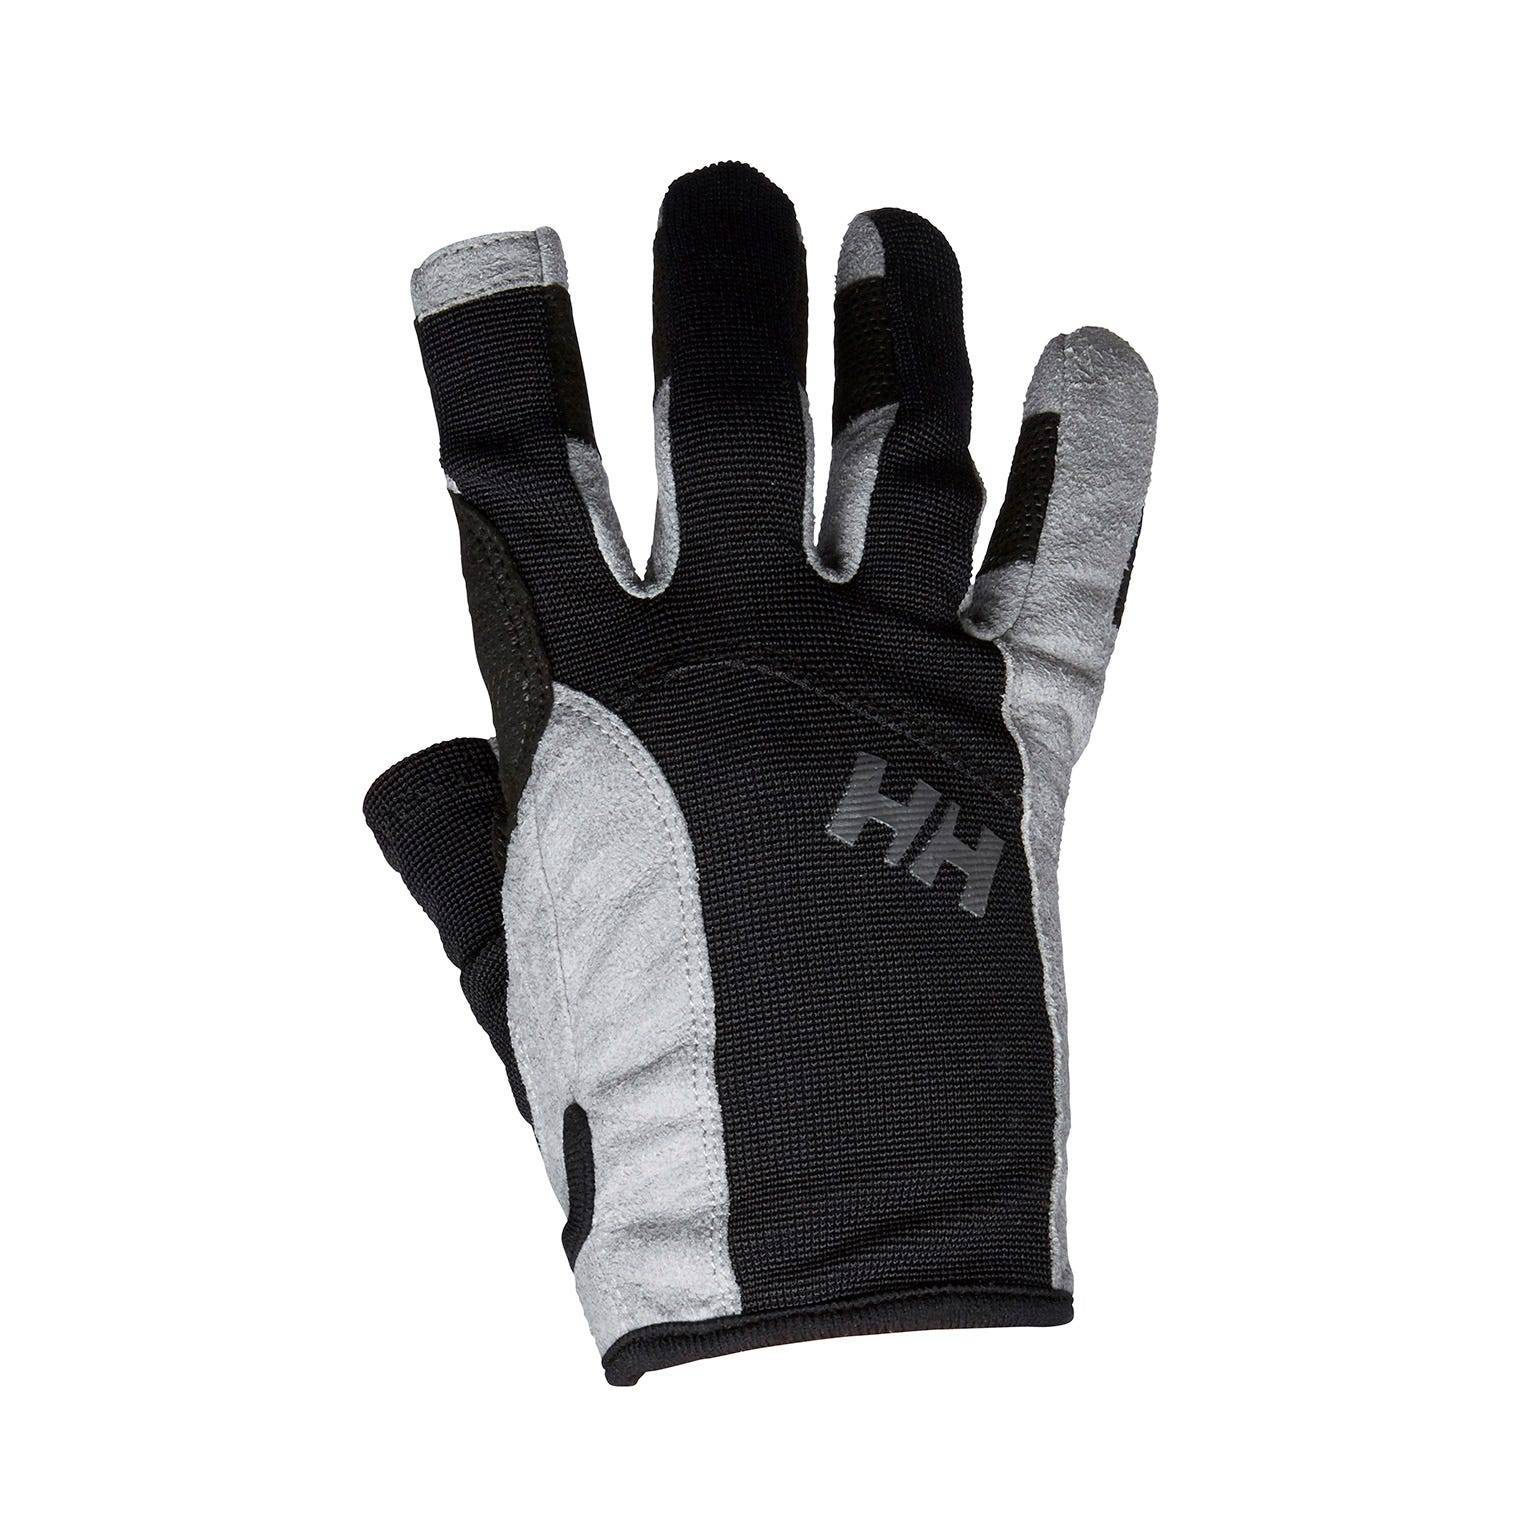 Helly Hansen Sailing Glove Long Black S